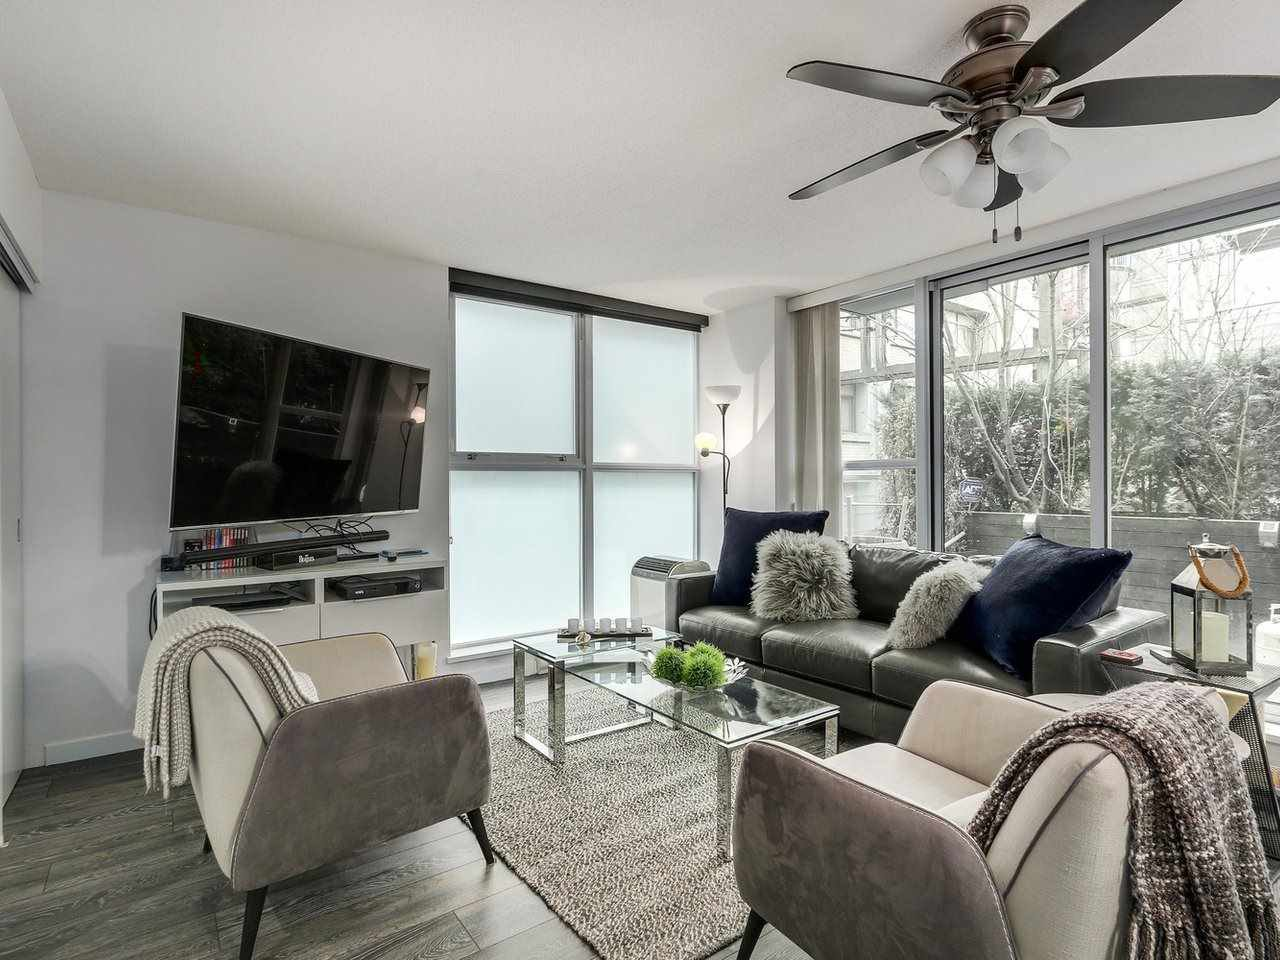 Photo 4: Photos: 217 168 POWELL Street in Vancouver: Downtown VE Condo for sale (Vancouver East)  : MLS®# R2386644